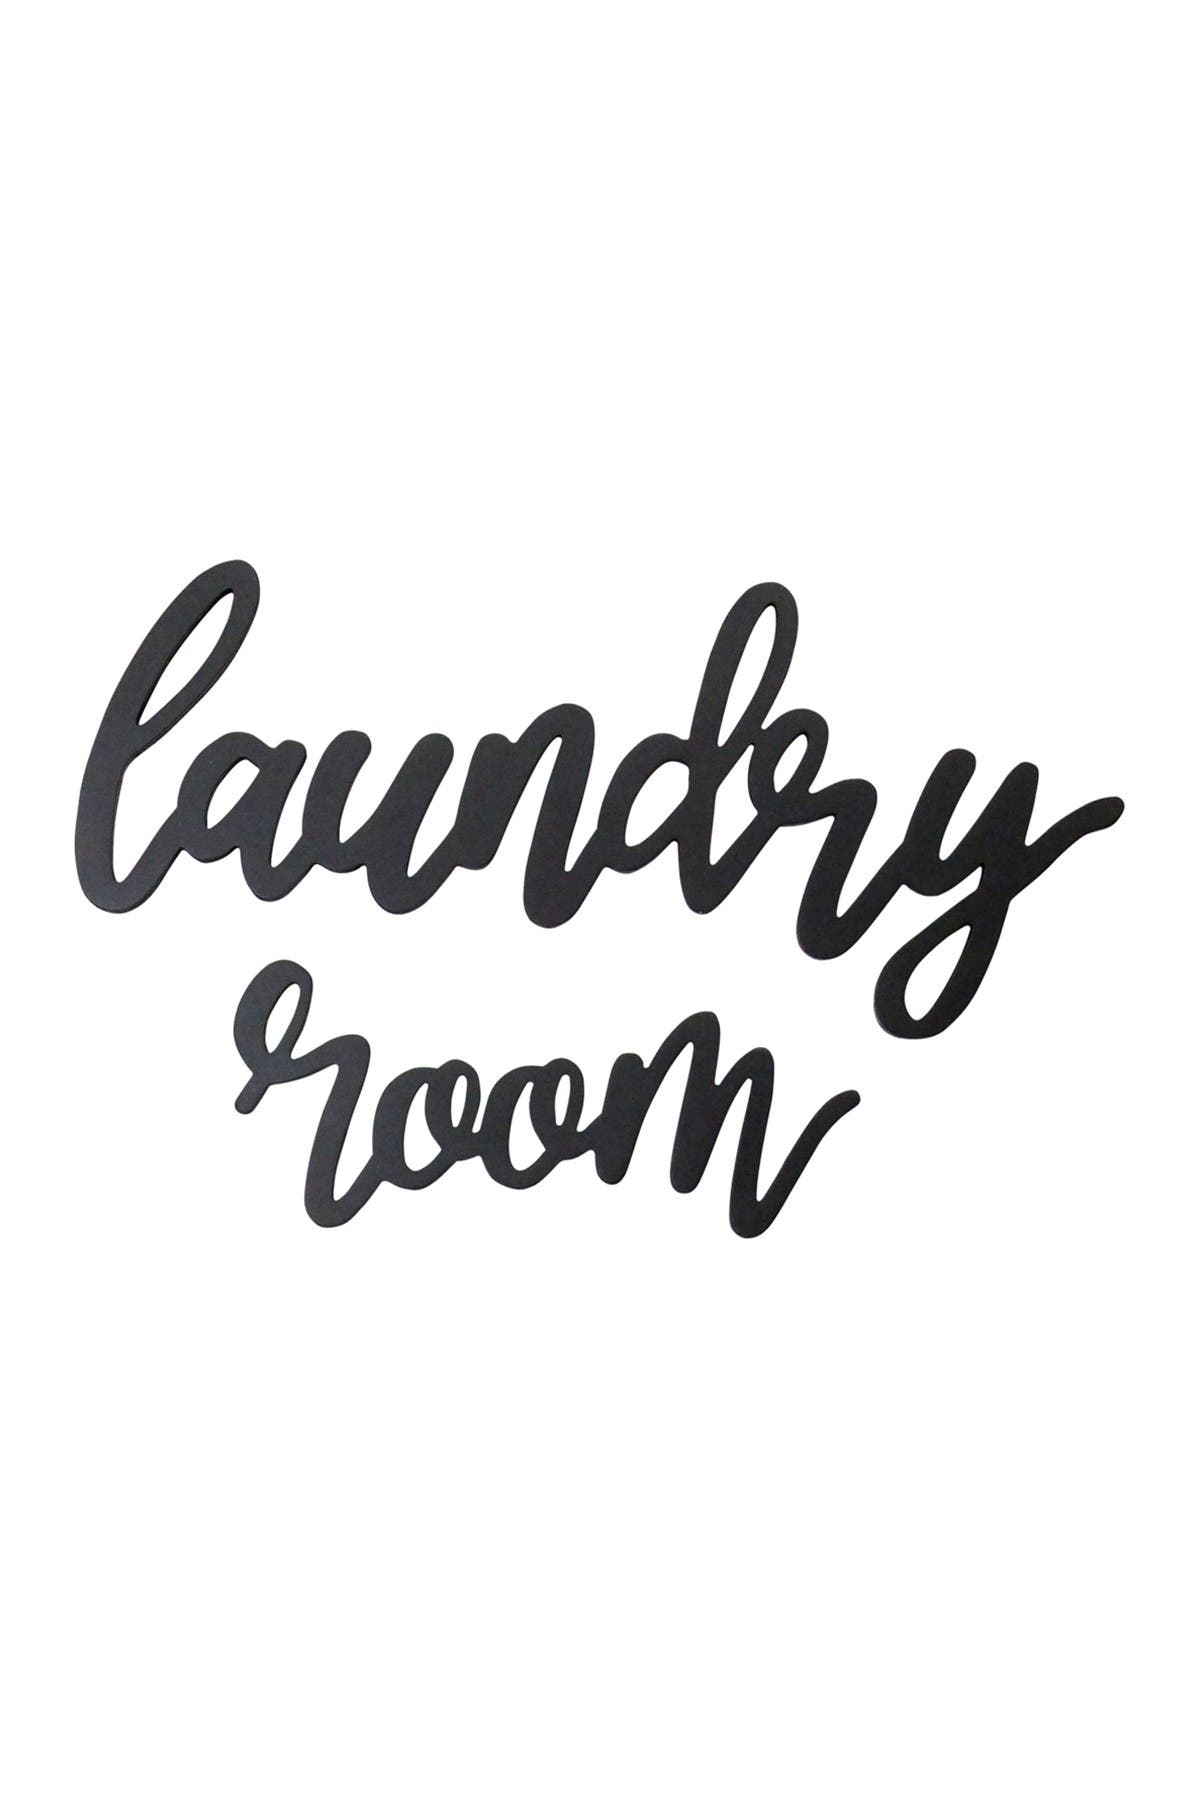 Image of Stratton Home Black Wood Laundry Room Script Wall Decor